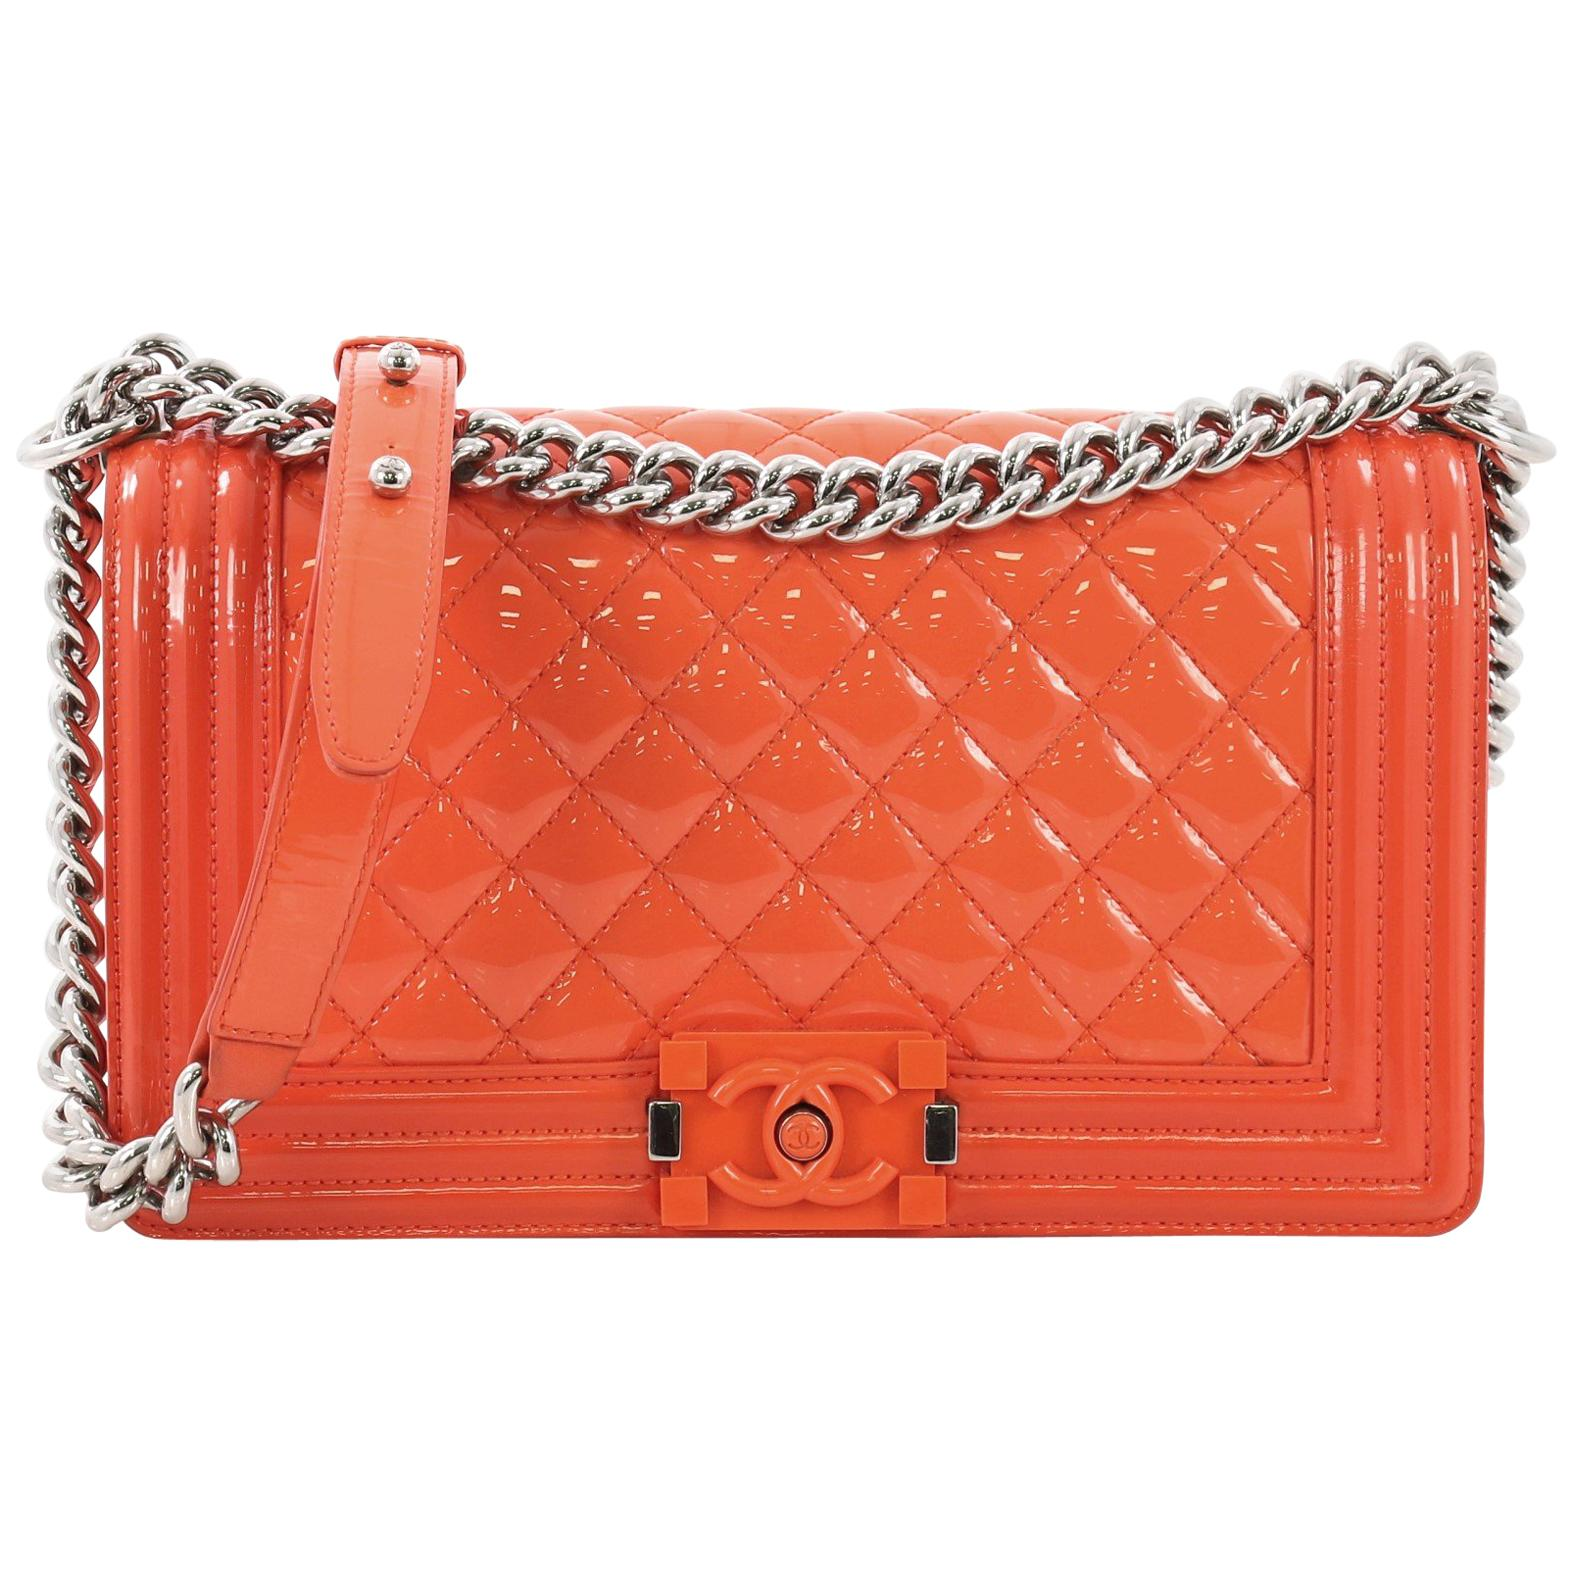 358fb76971fa Chanel Boy Flap Bag Chevron Calfskin Old Medium For Sale at 1stdibs